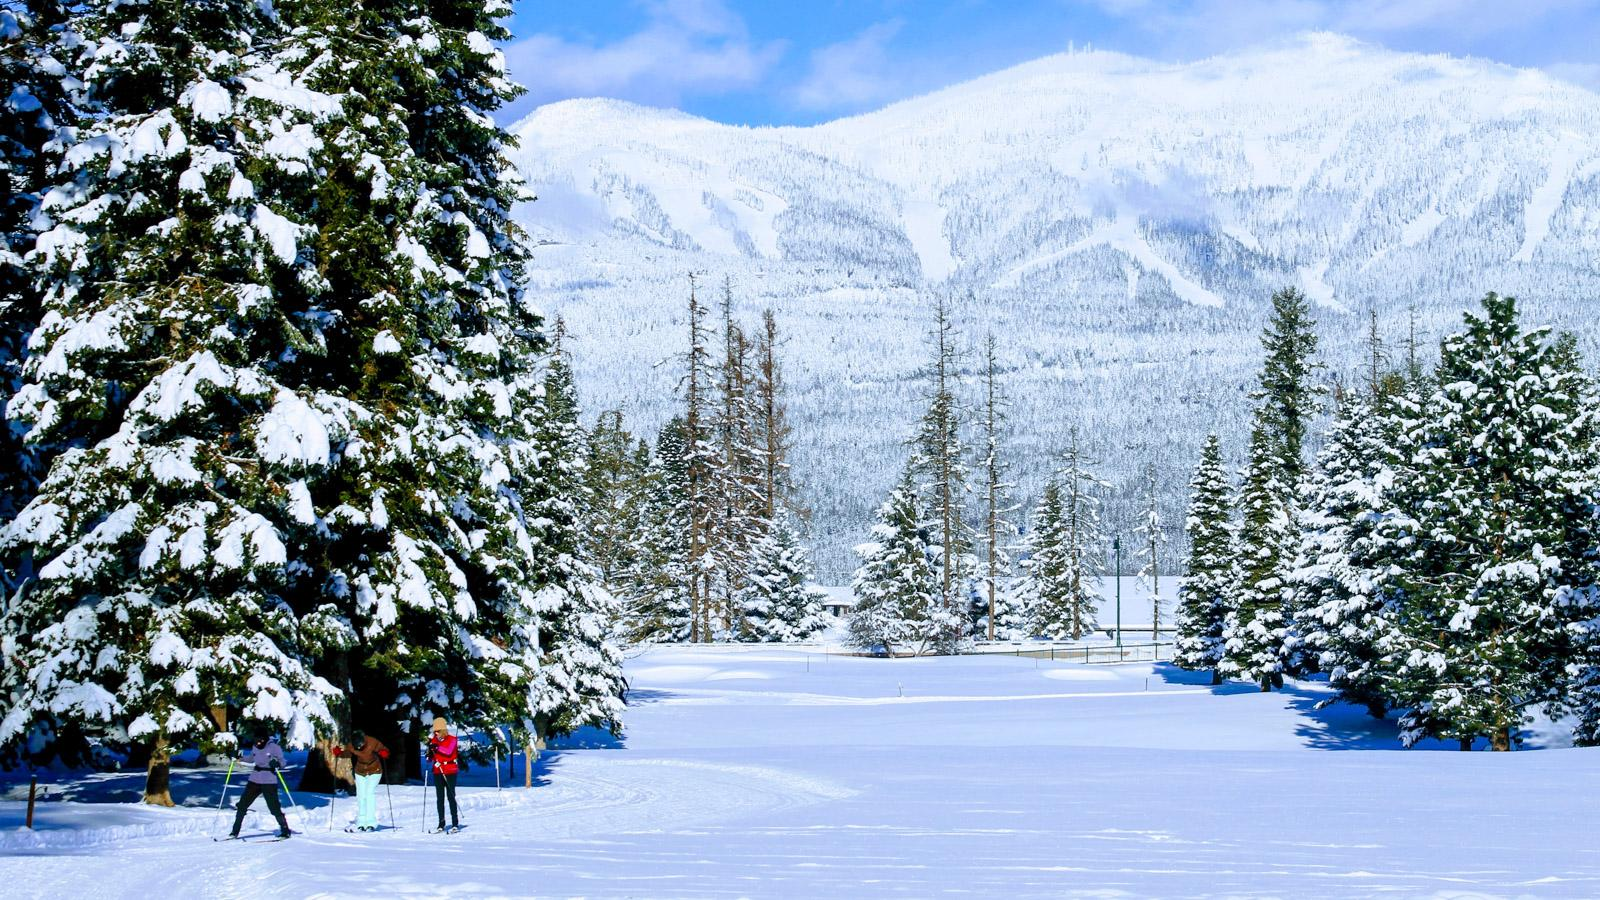 The groomed trails at Whitefish Lake Golf Course